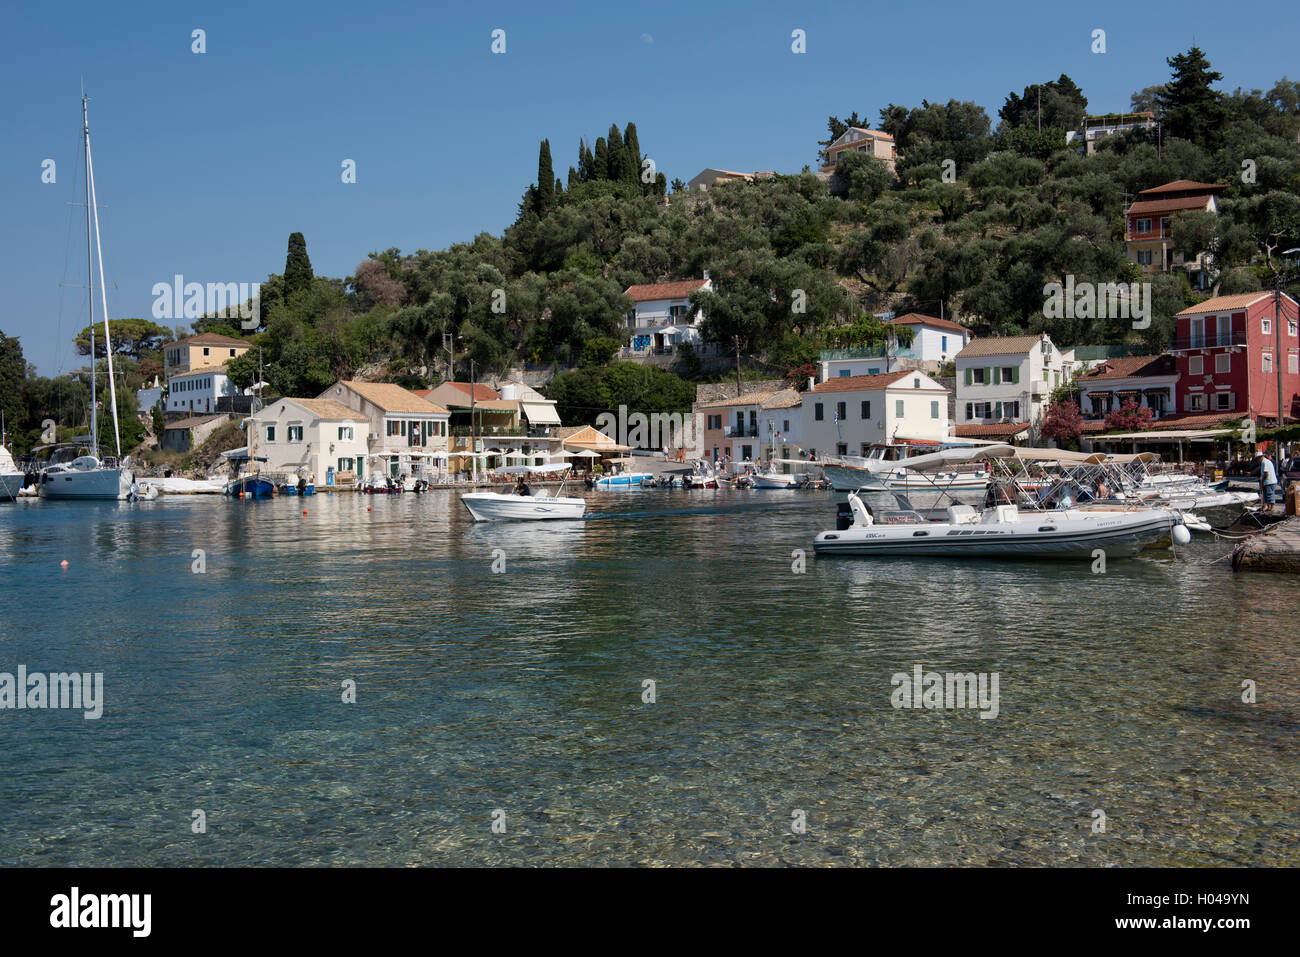 The picturesque harbour of Loggos on Paxos, The Ionian Islands, Geek Islands, Greece, Europe - Stock Image